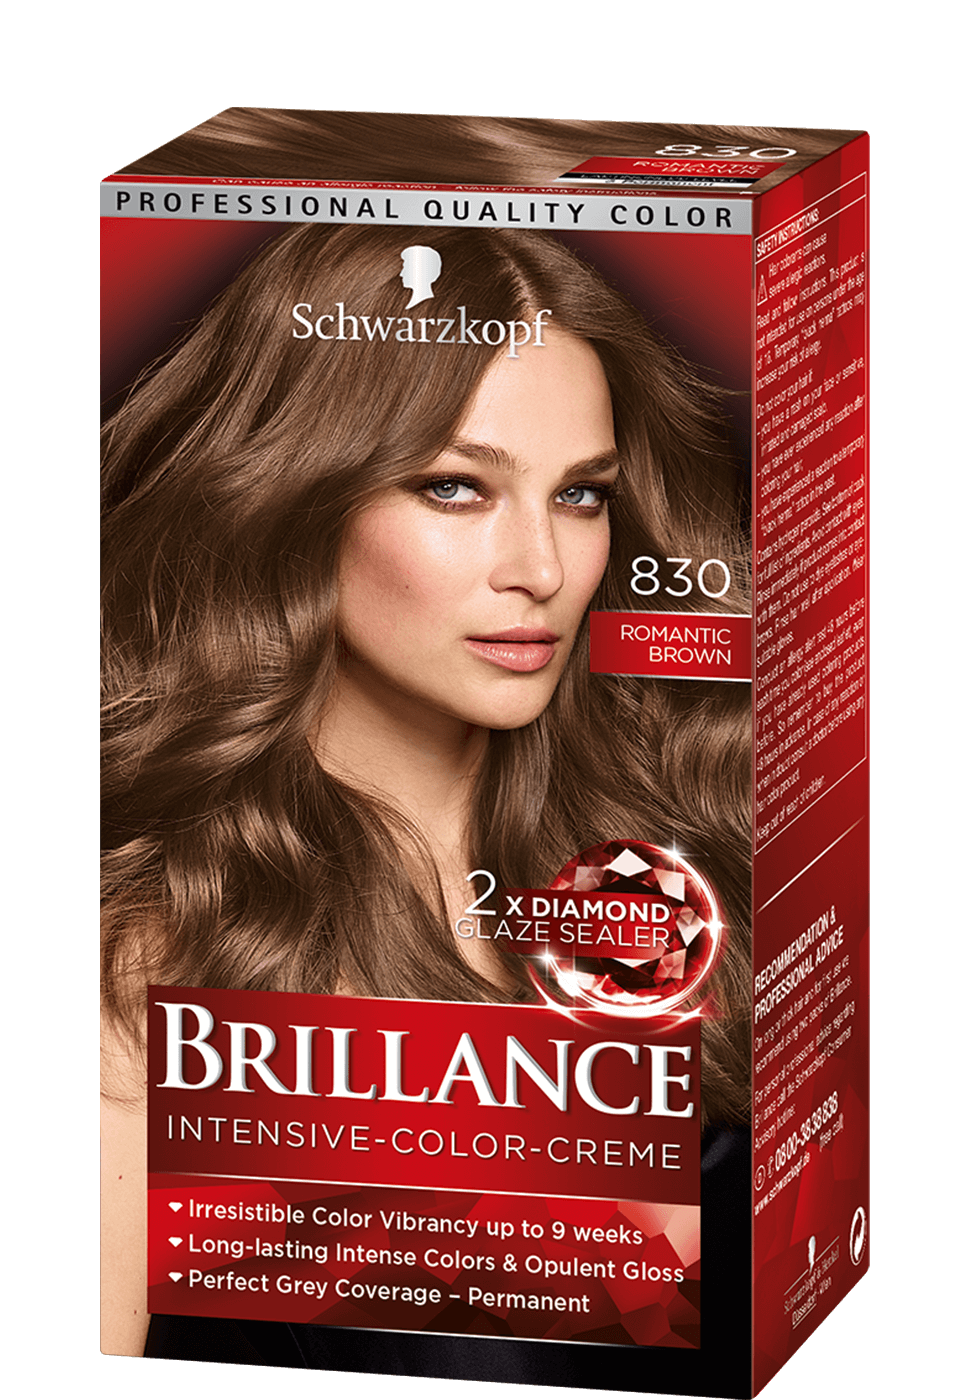 brillance_com_intensive_color_creme_830_romantic_brown_970x1400